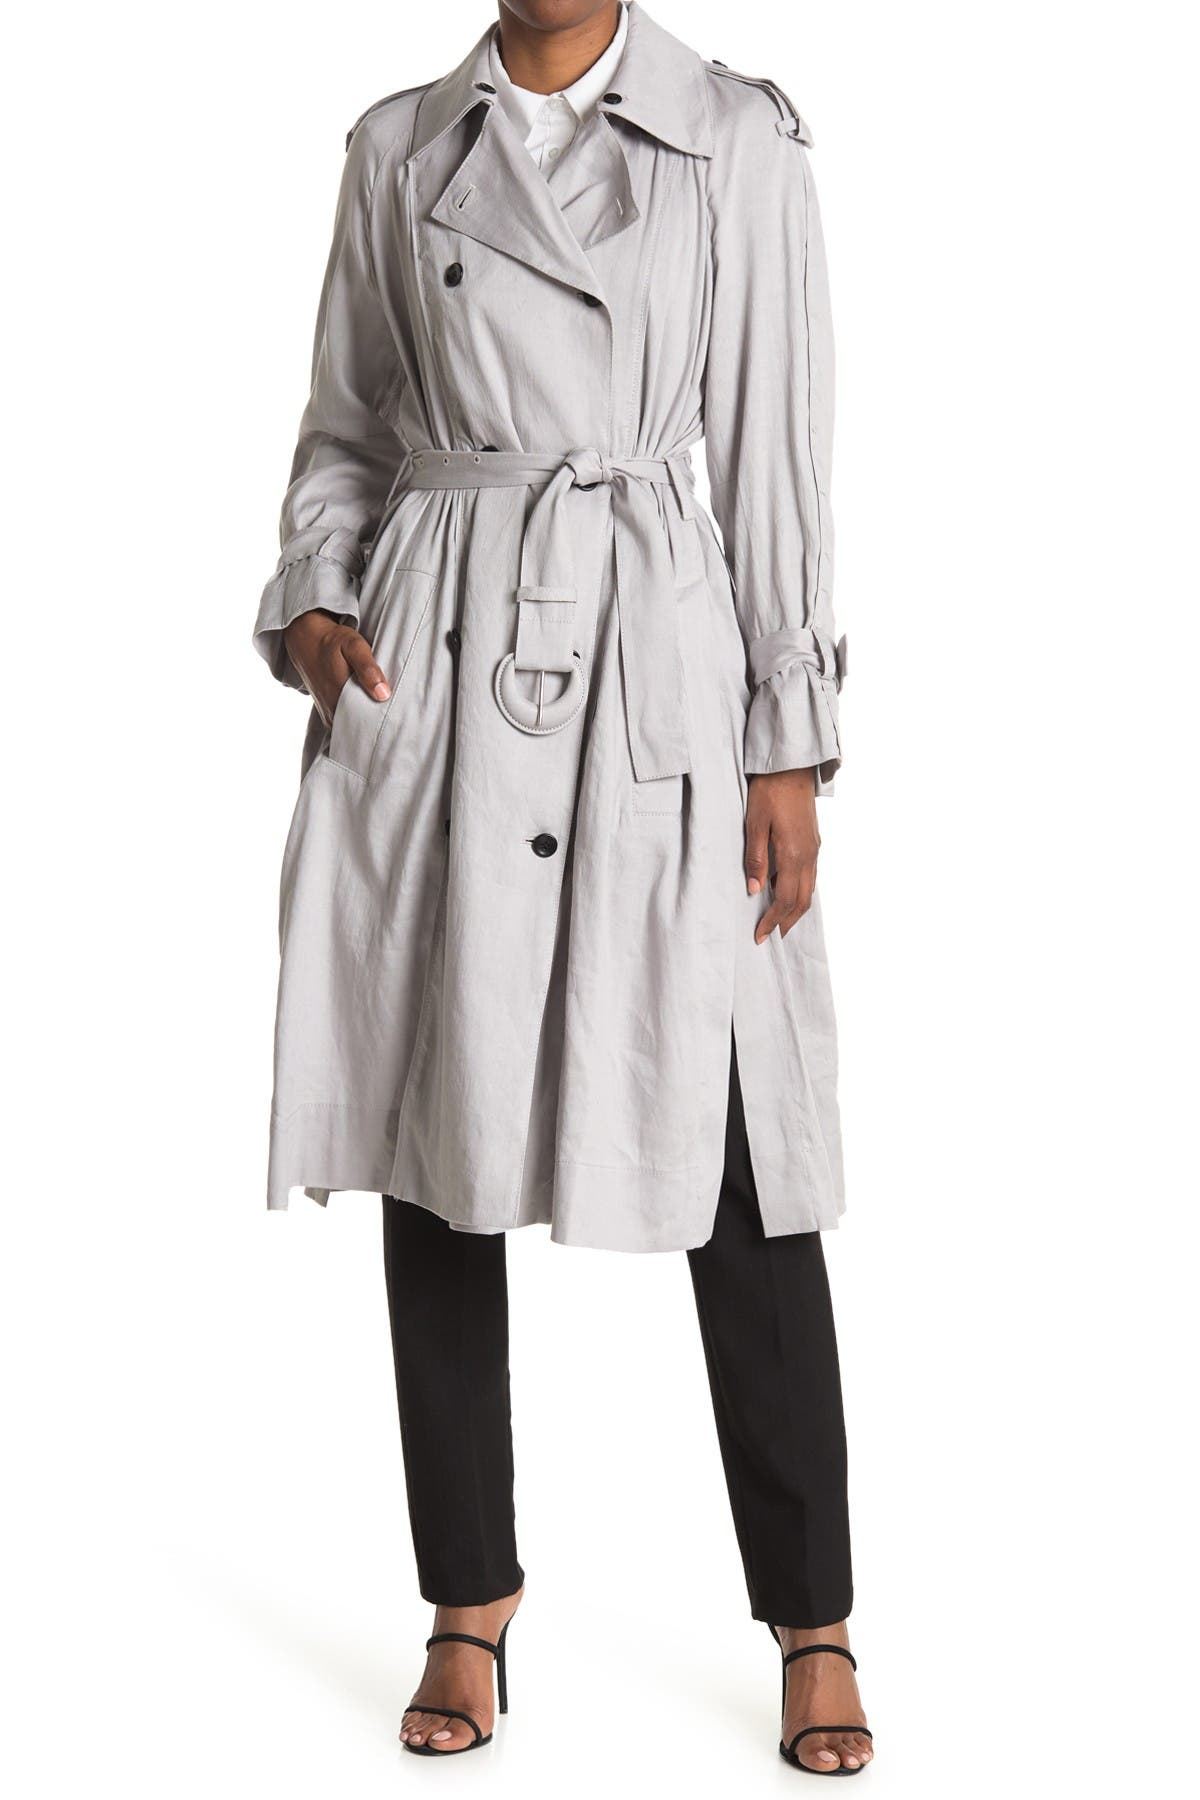 Image of Proenza Schouler Belted Double Breasted Trench Coat